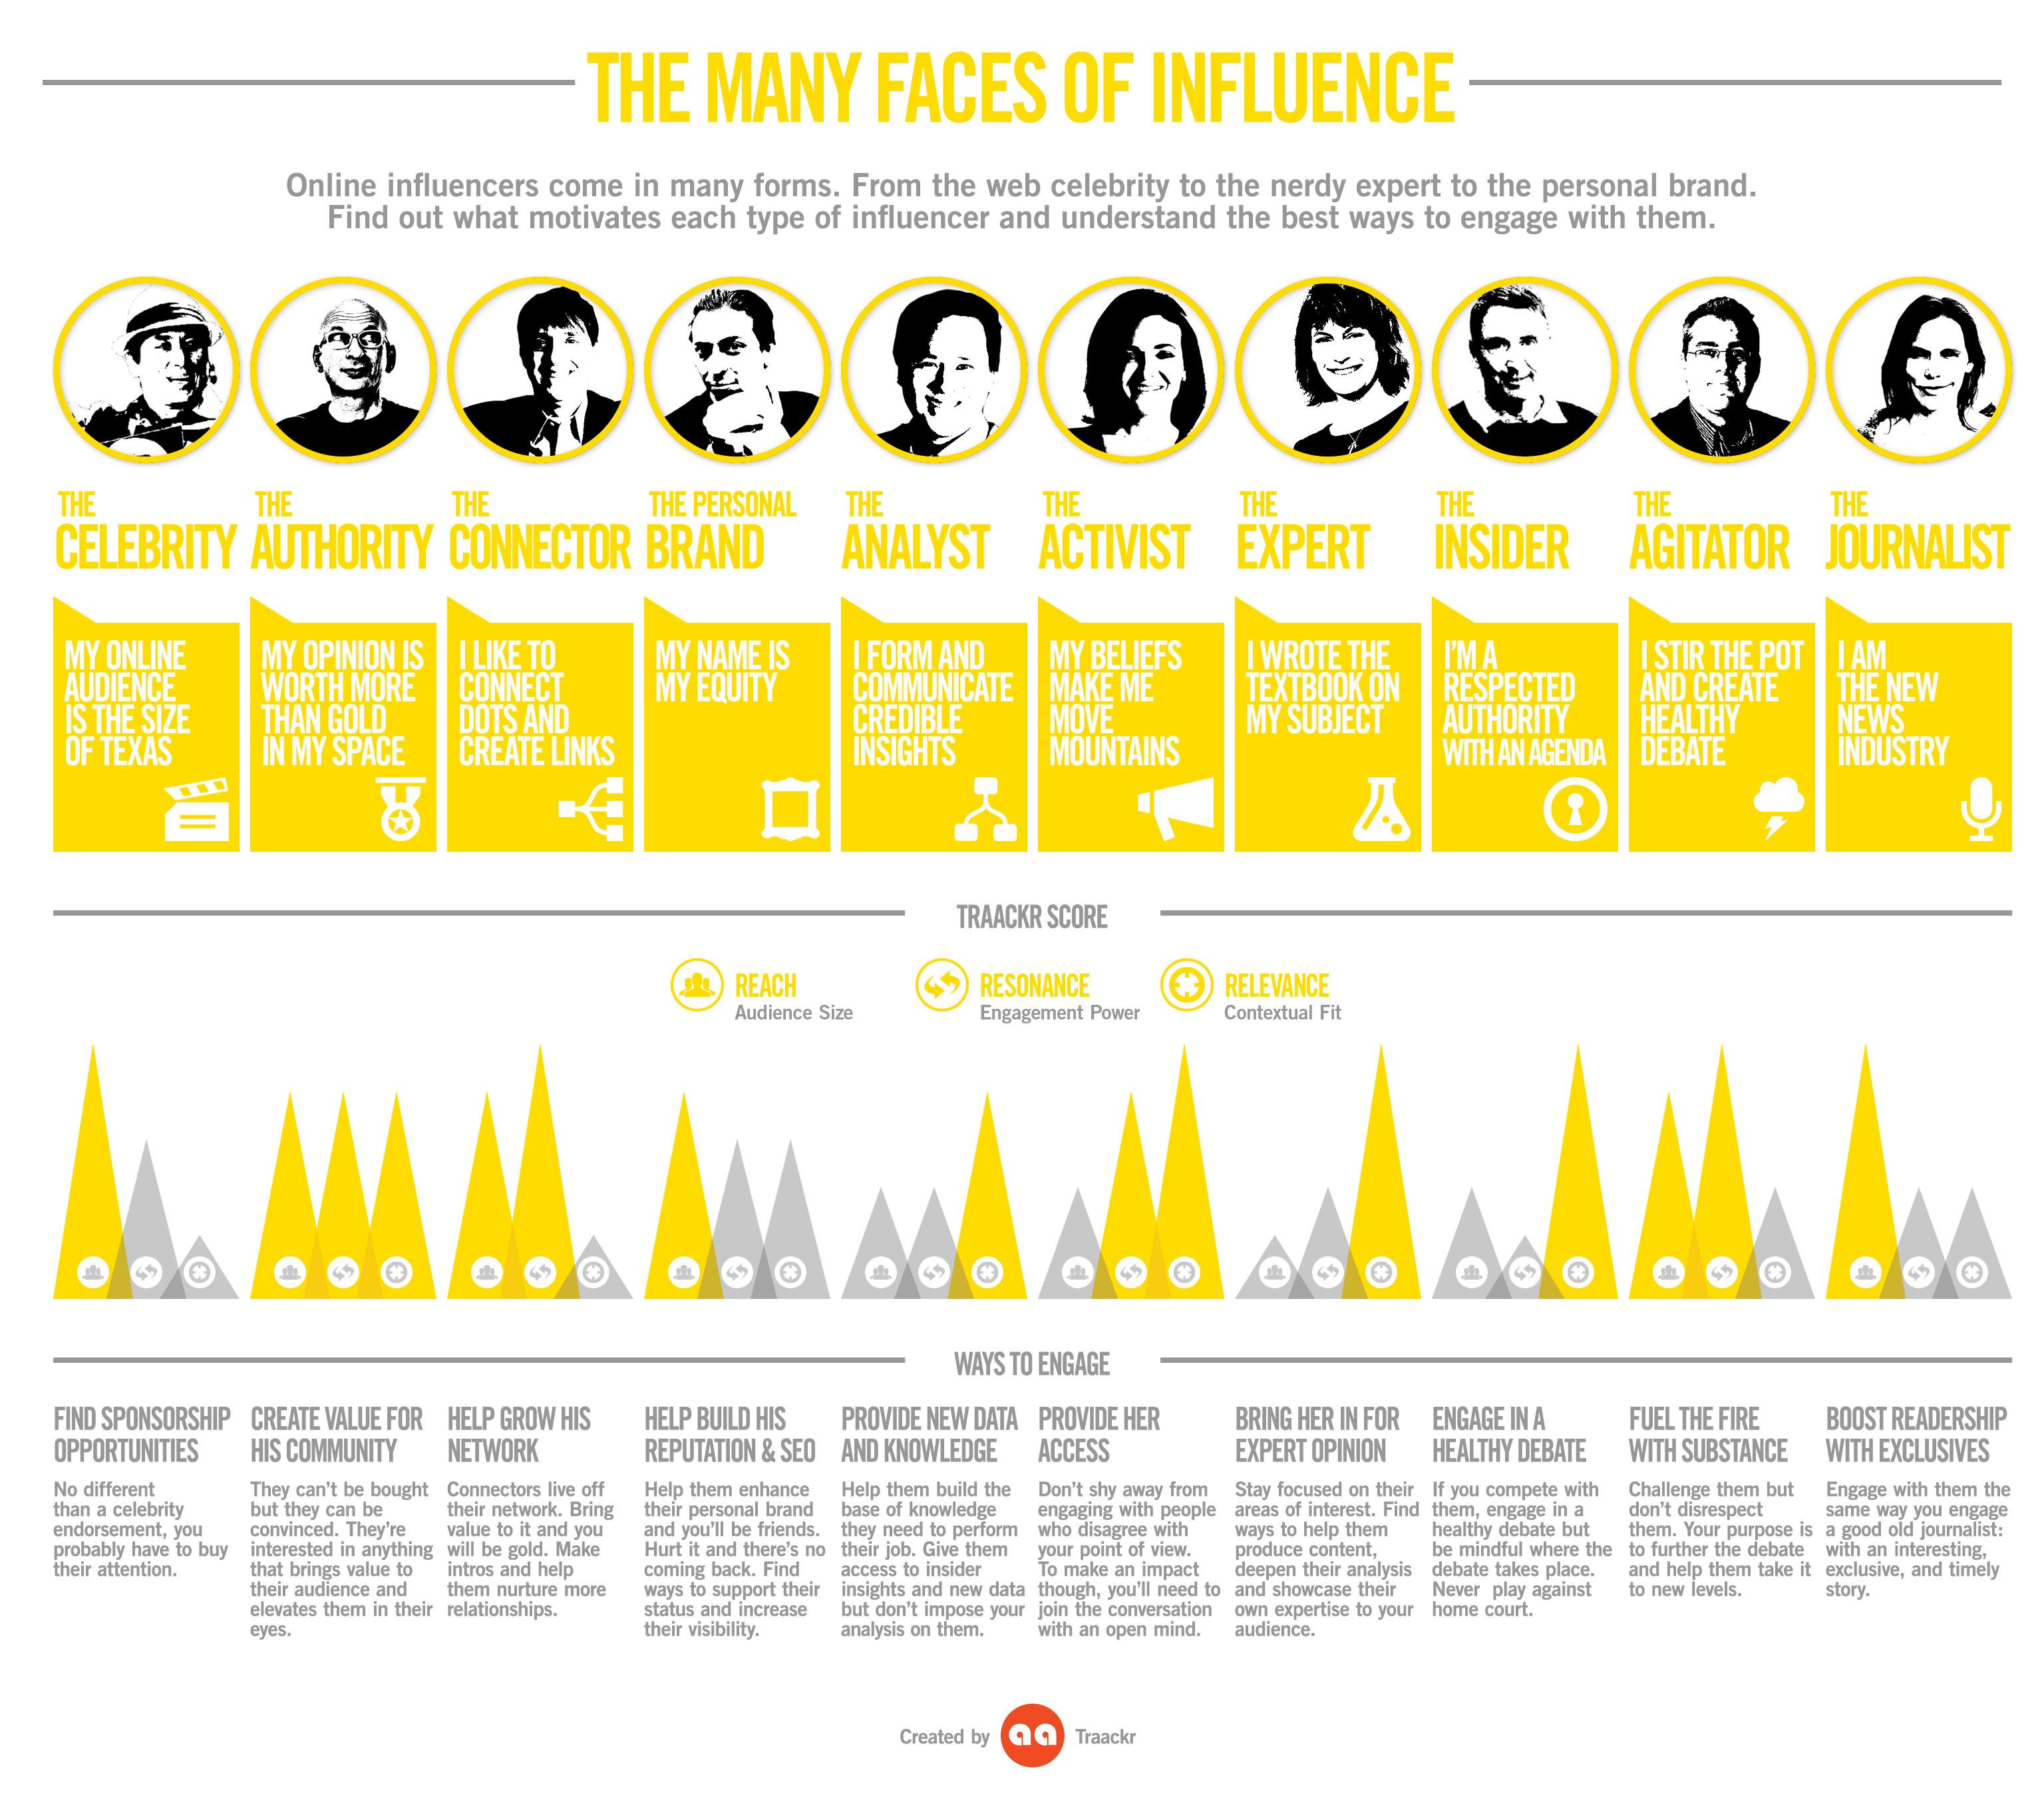 Great infographic showcasing the many faces of social media influencers and the best ways to connect with them.